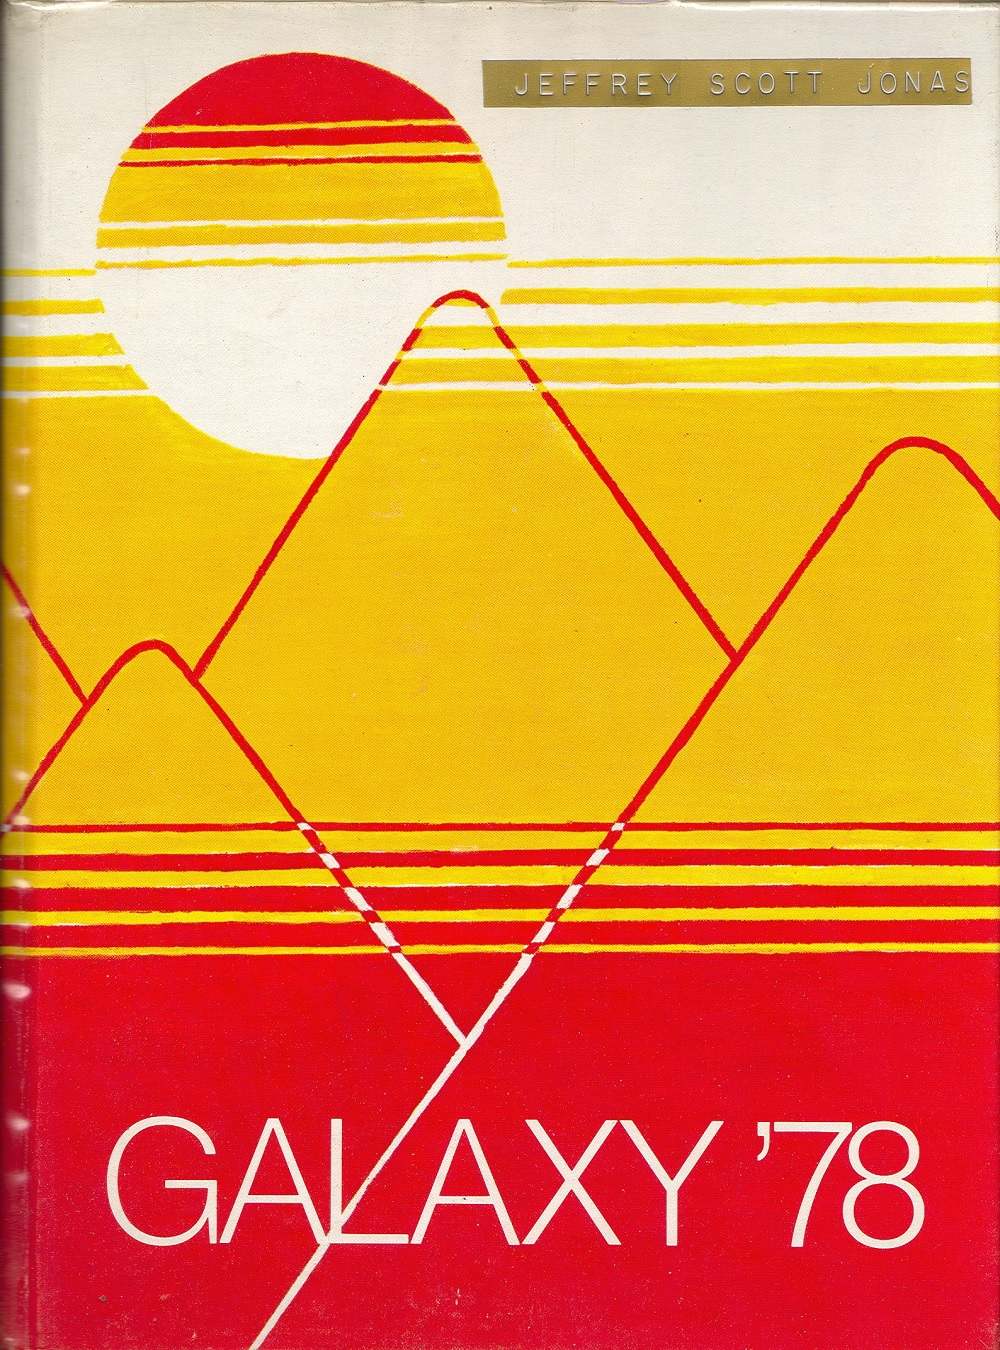 high school yearbook covers 1978 1979 part one 2 warps to neptune